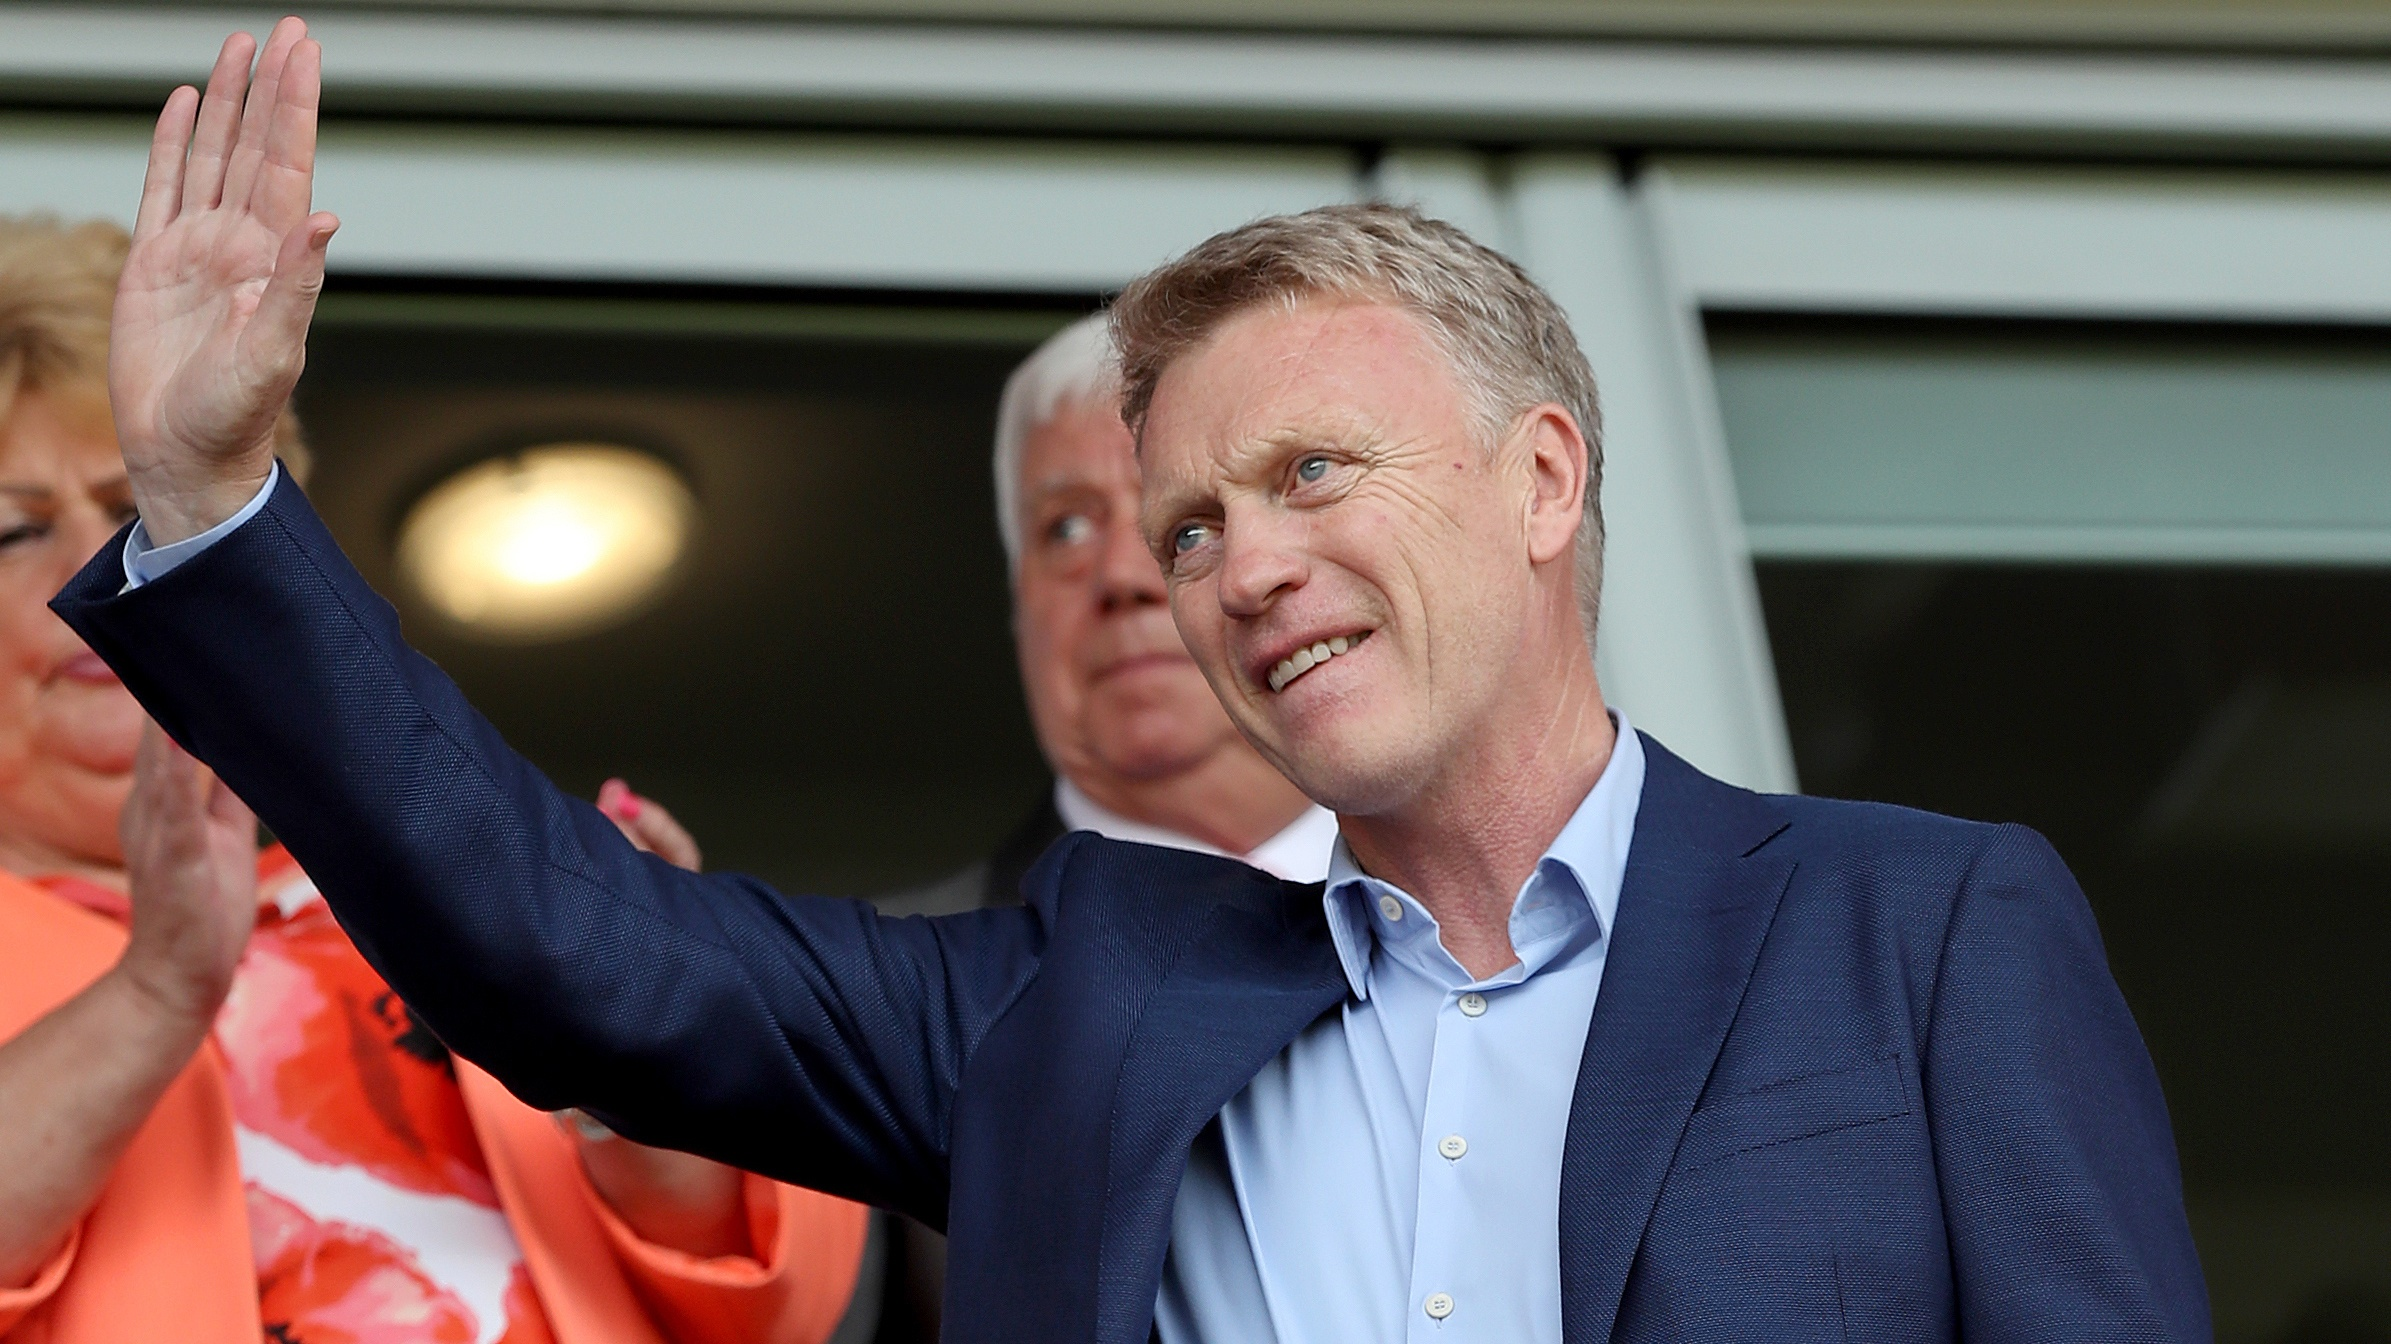 Moyes has almost a fortnight to get to know his new players, with his first match in charge at Watford on November 19.